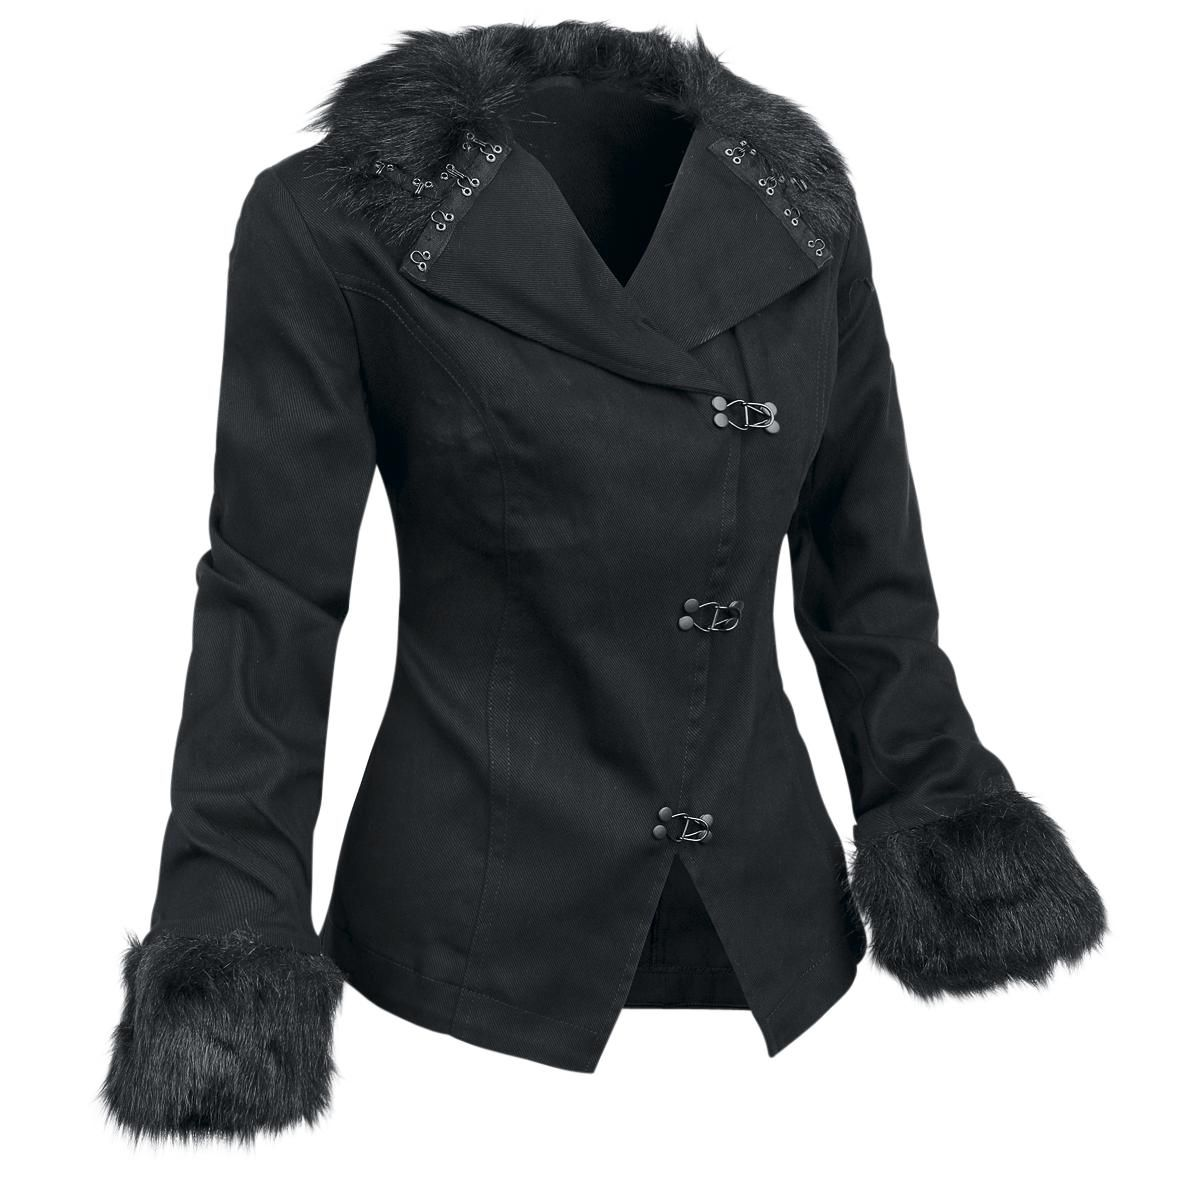 Angular hook closure on the front, imitation fur made of 100% polyester.